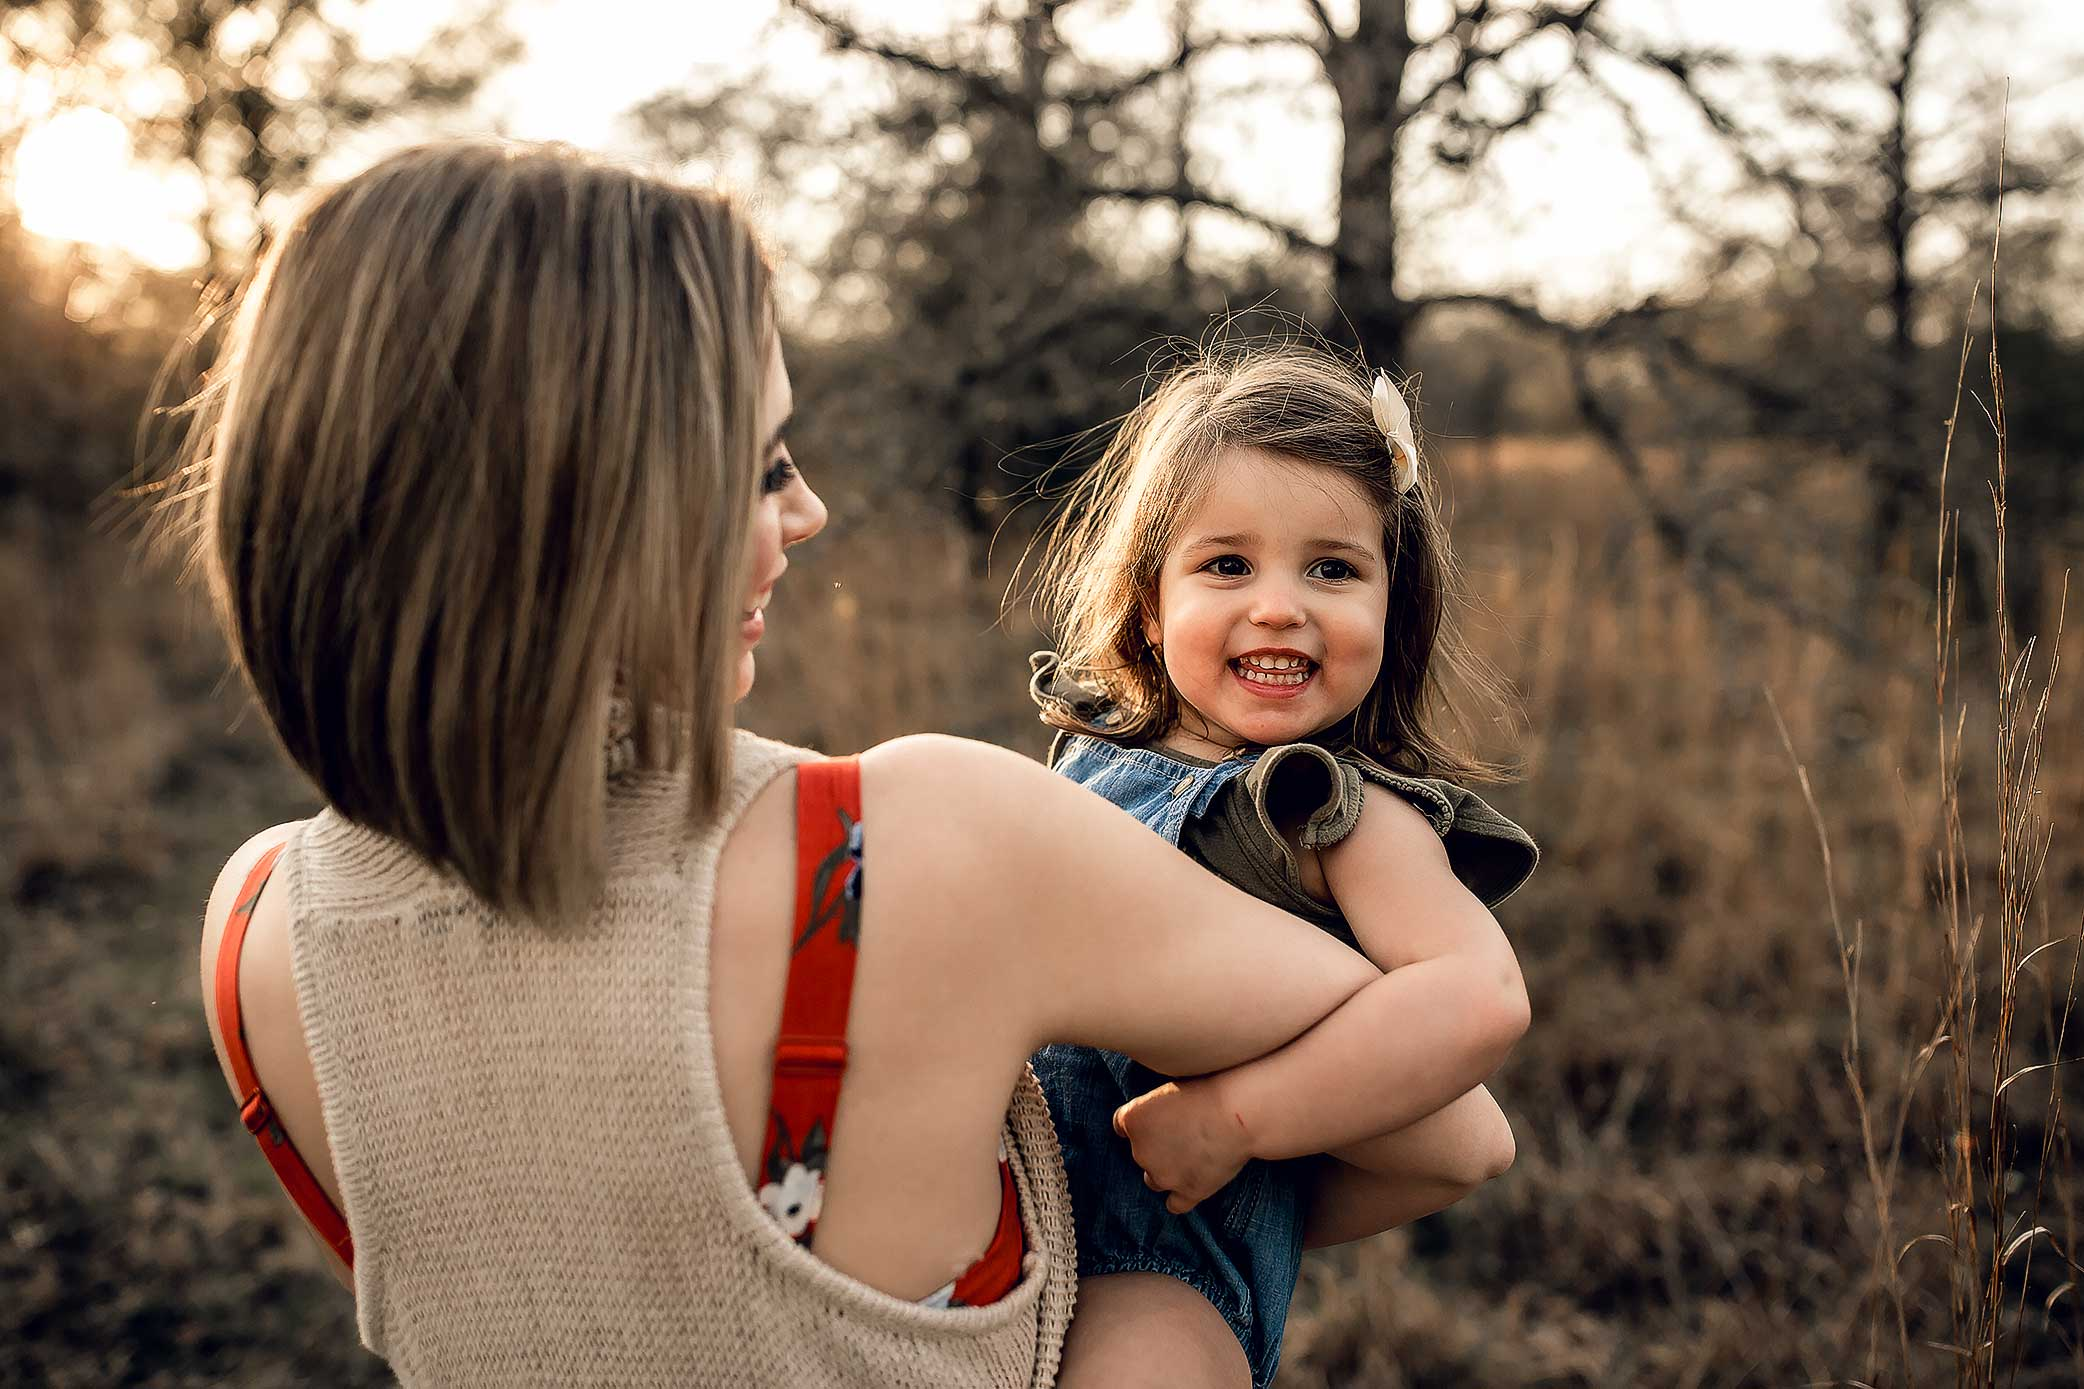 shelby-schiller-photography-sunset-family-pictures-spring-2019-33.jpg